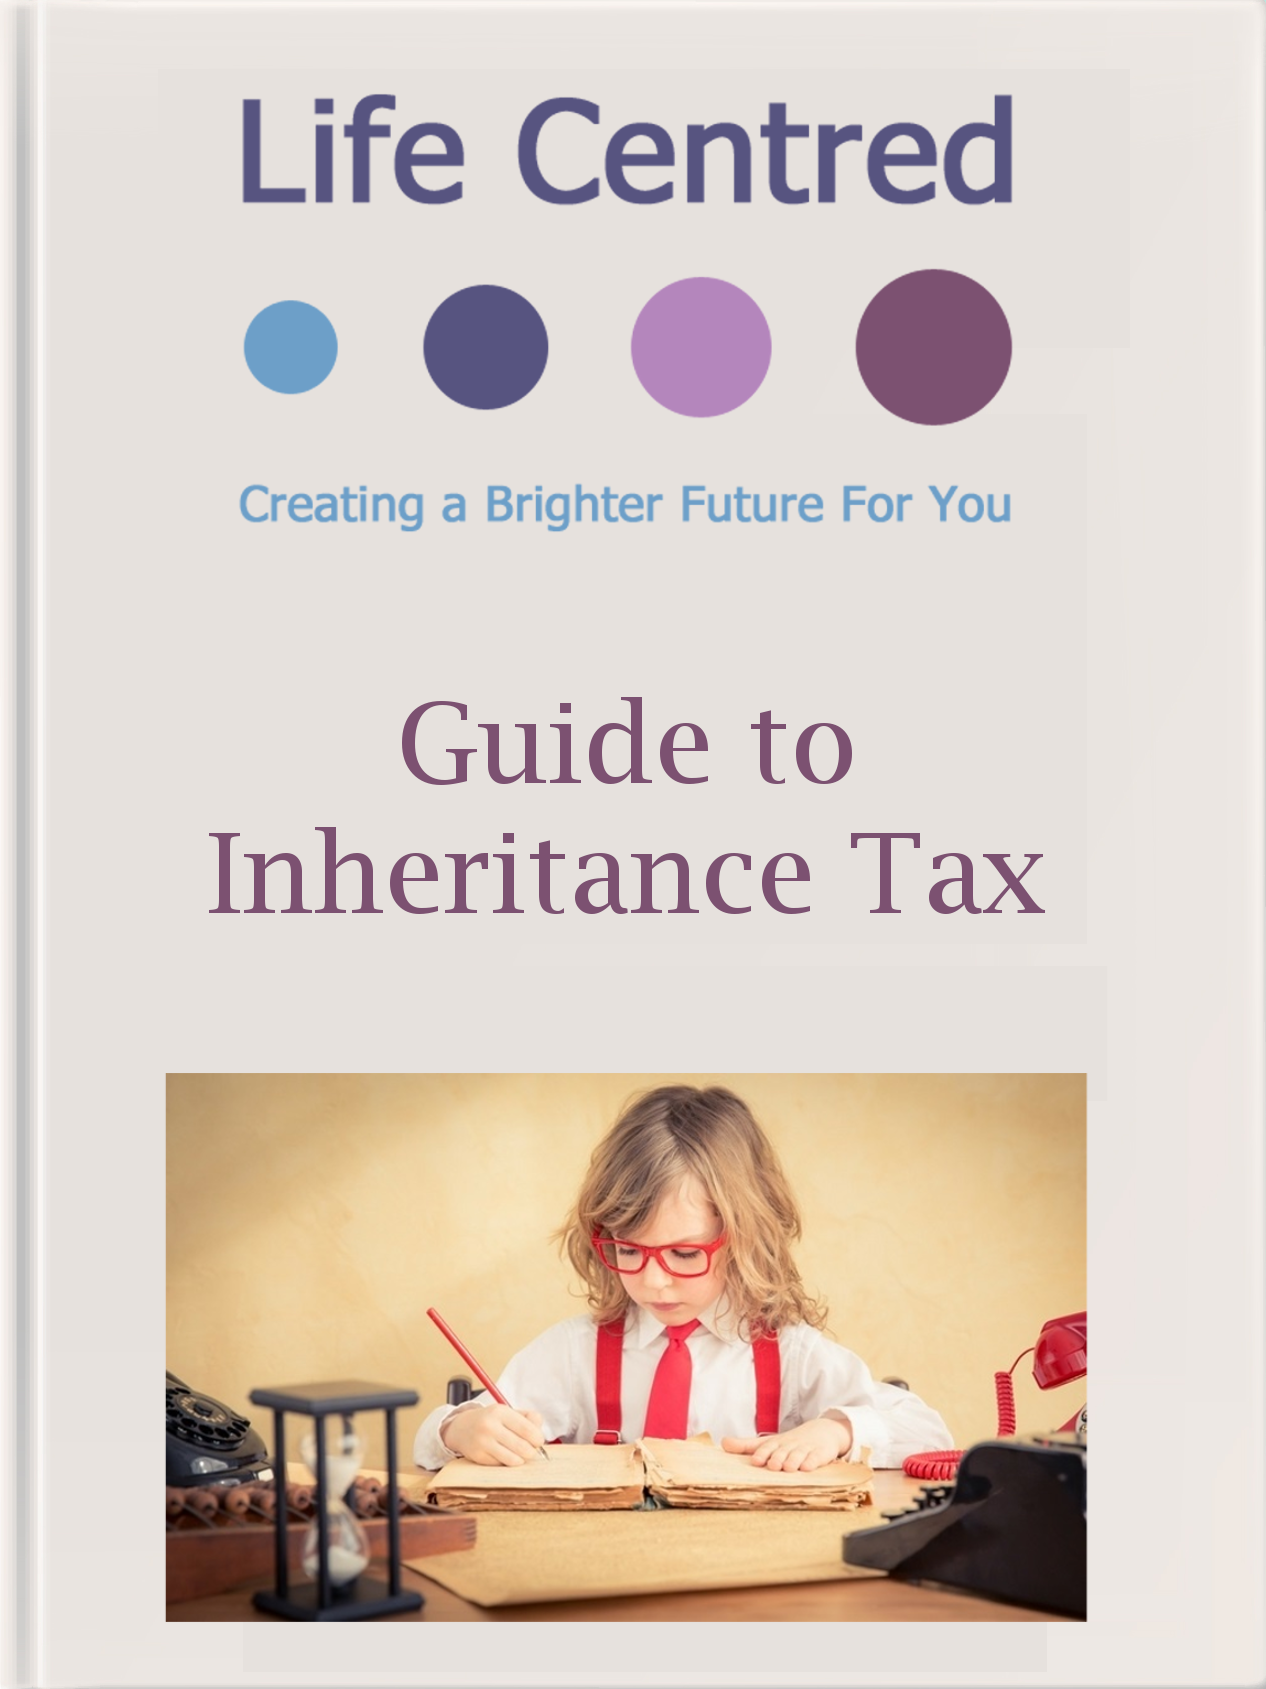 Download our Inheritance Tax Guide